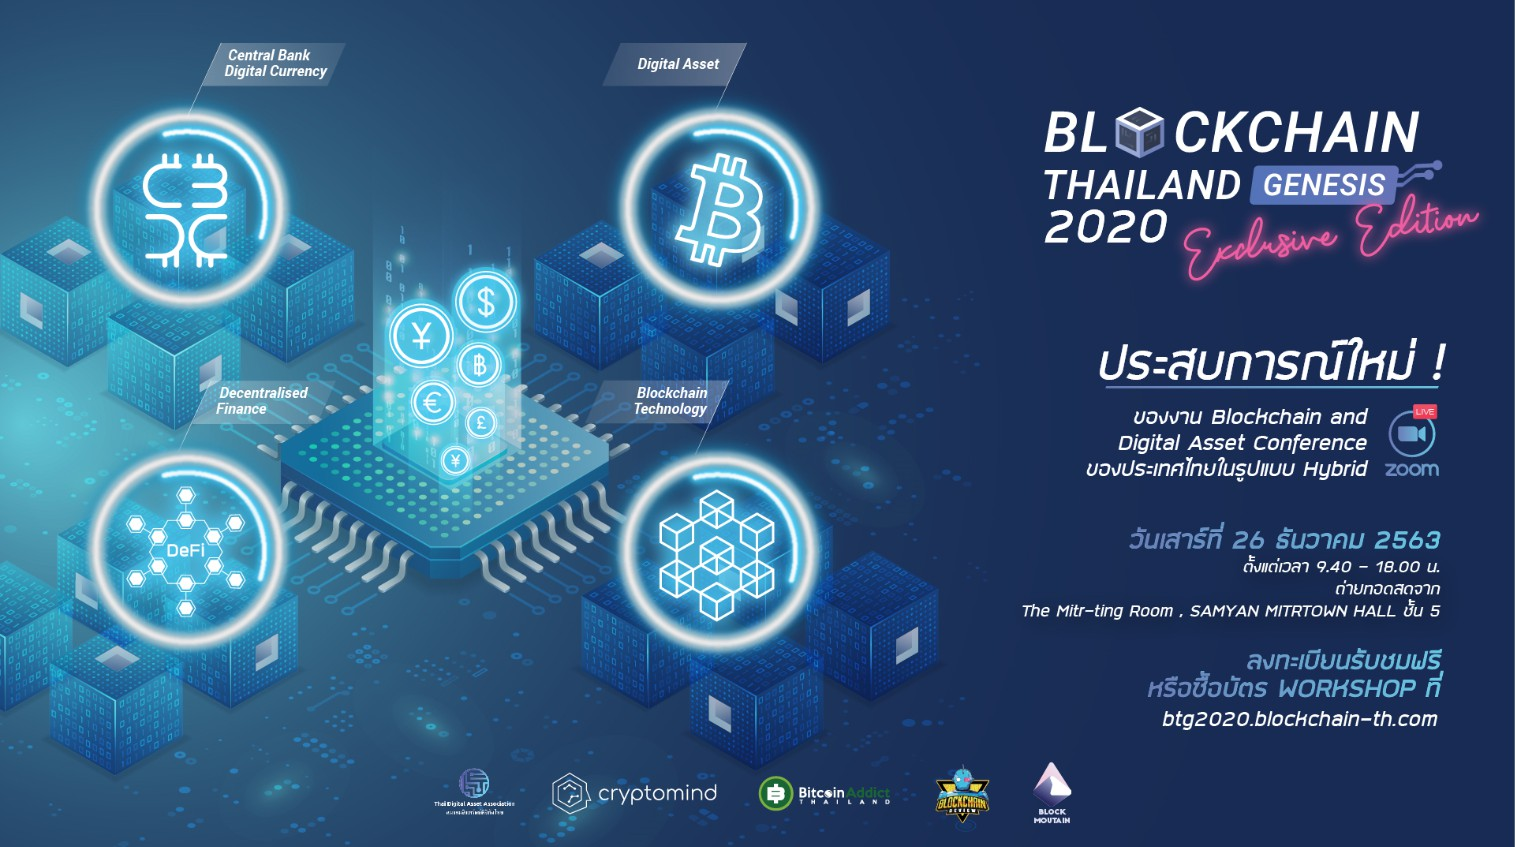 Blockchain Thailand Genesis 2020 Exclusive Edition